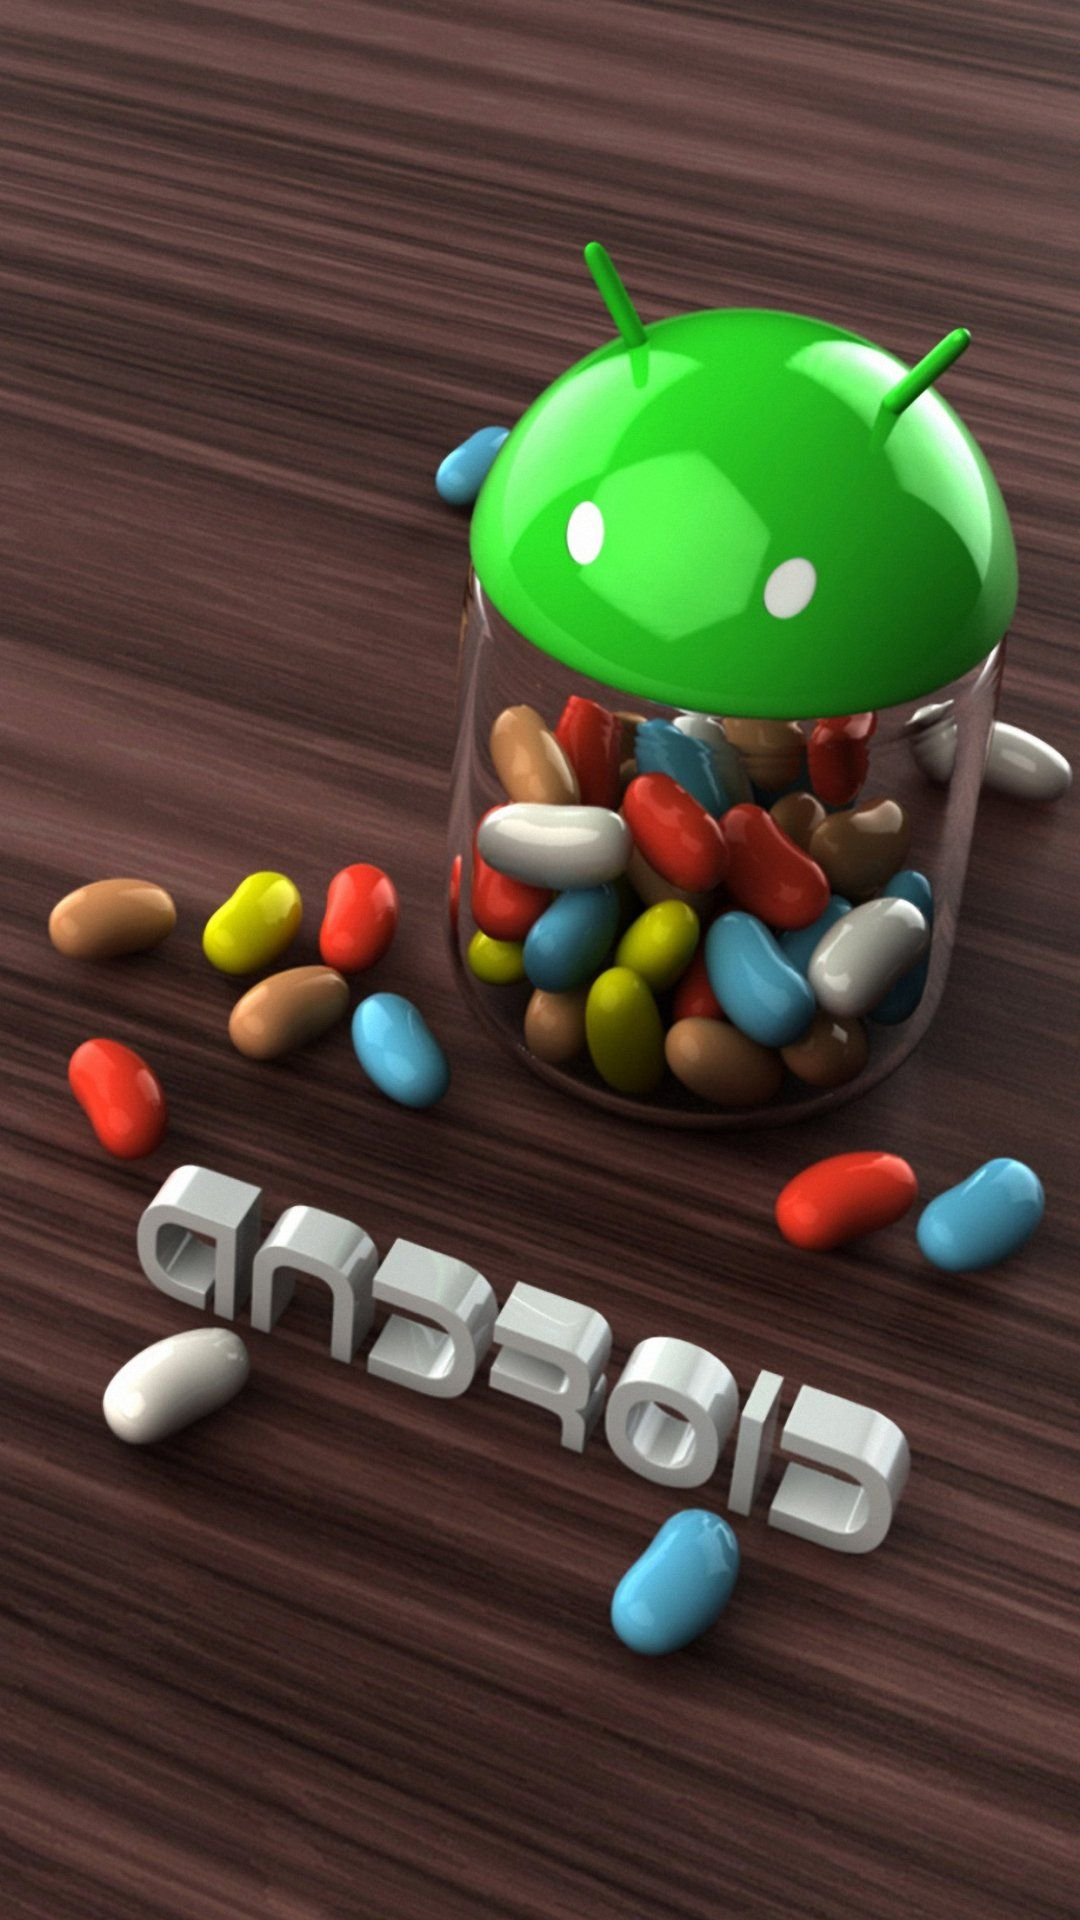 Wallpaper Android Jelly Bean